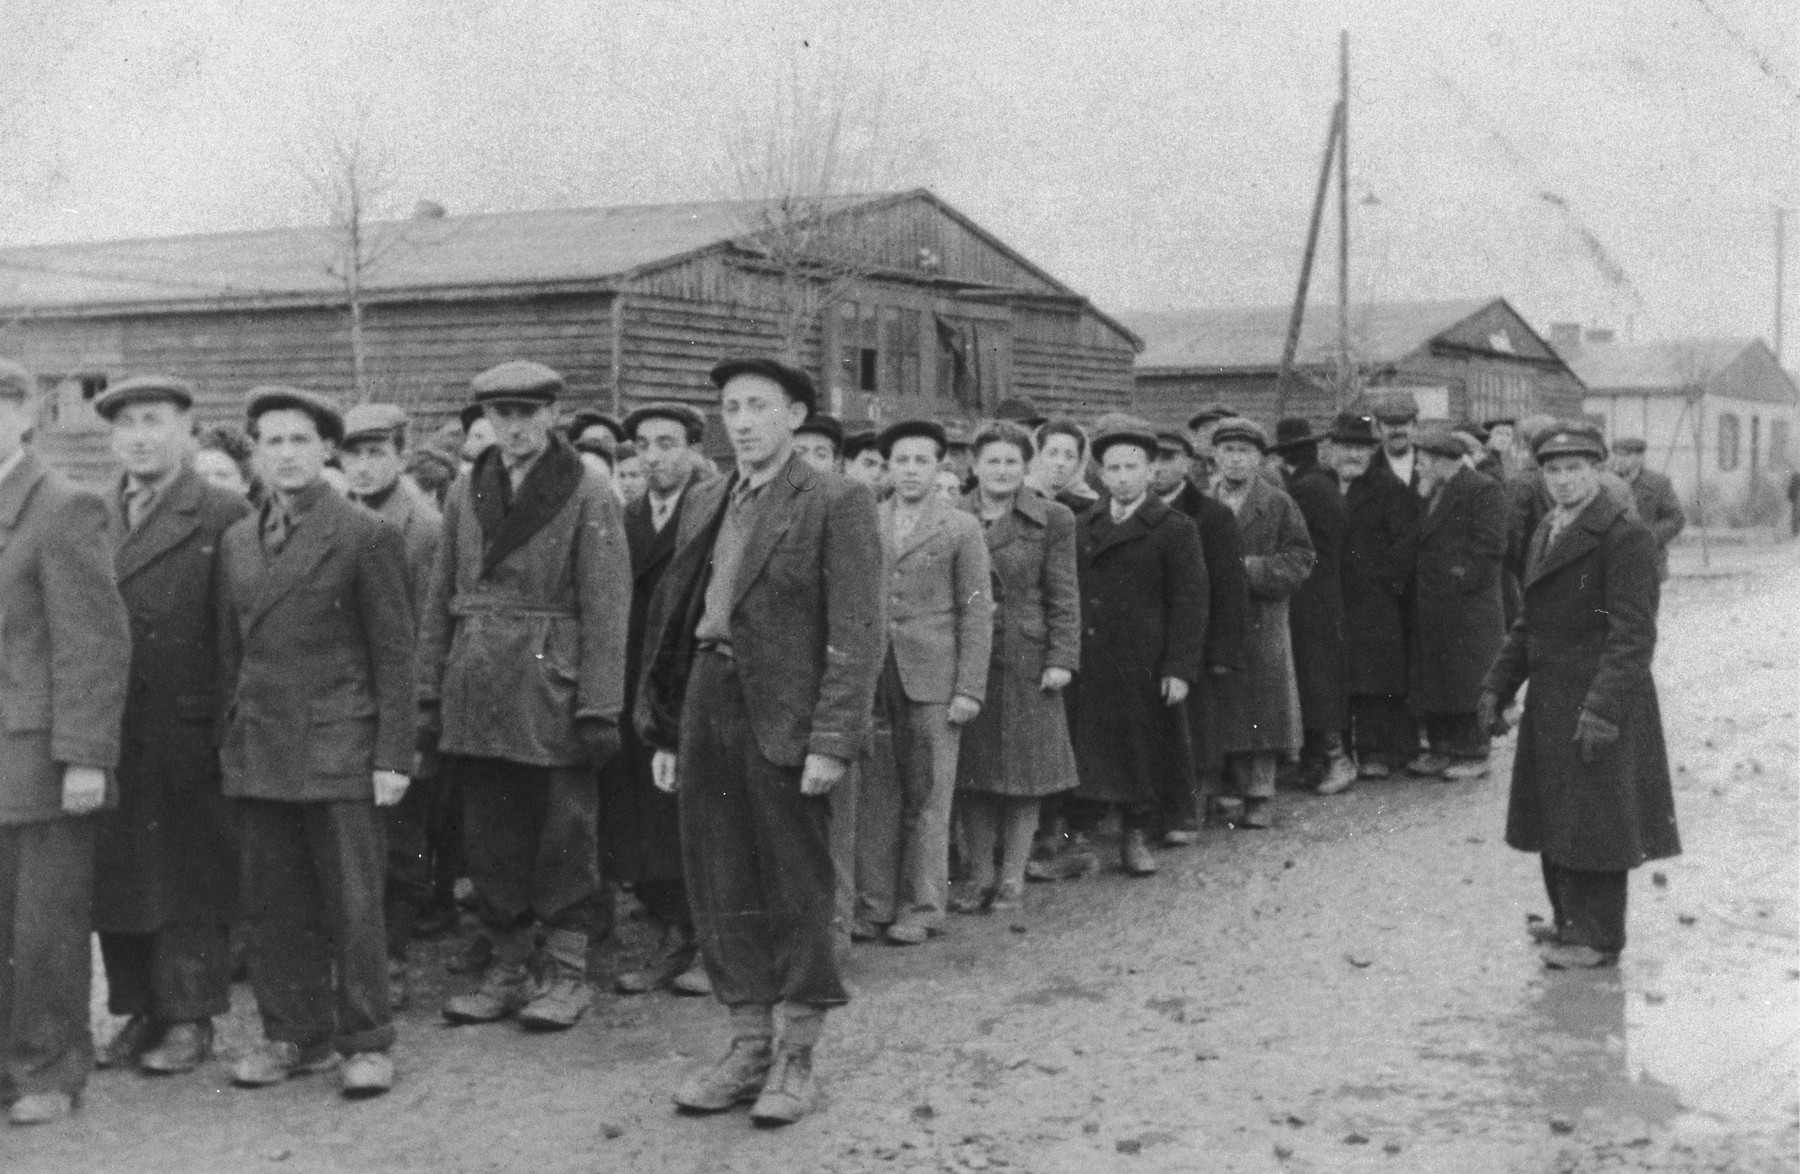 Jewish DPs line up in preparation for an anti-British demonstration at the Ziegenhain displaced persons camp.